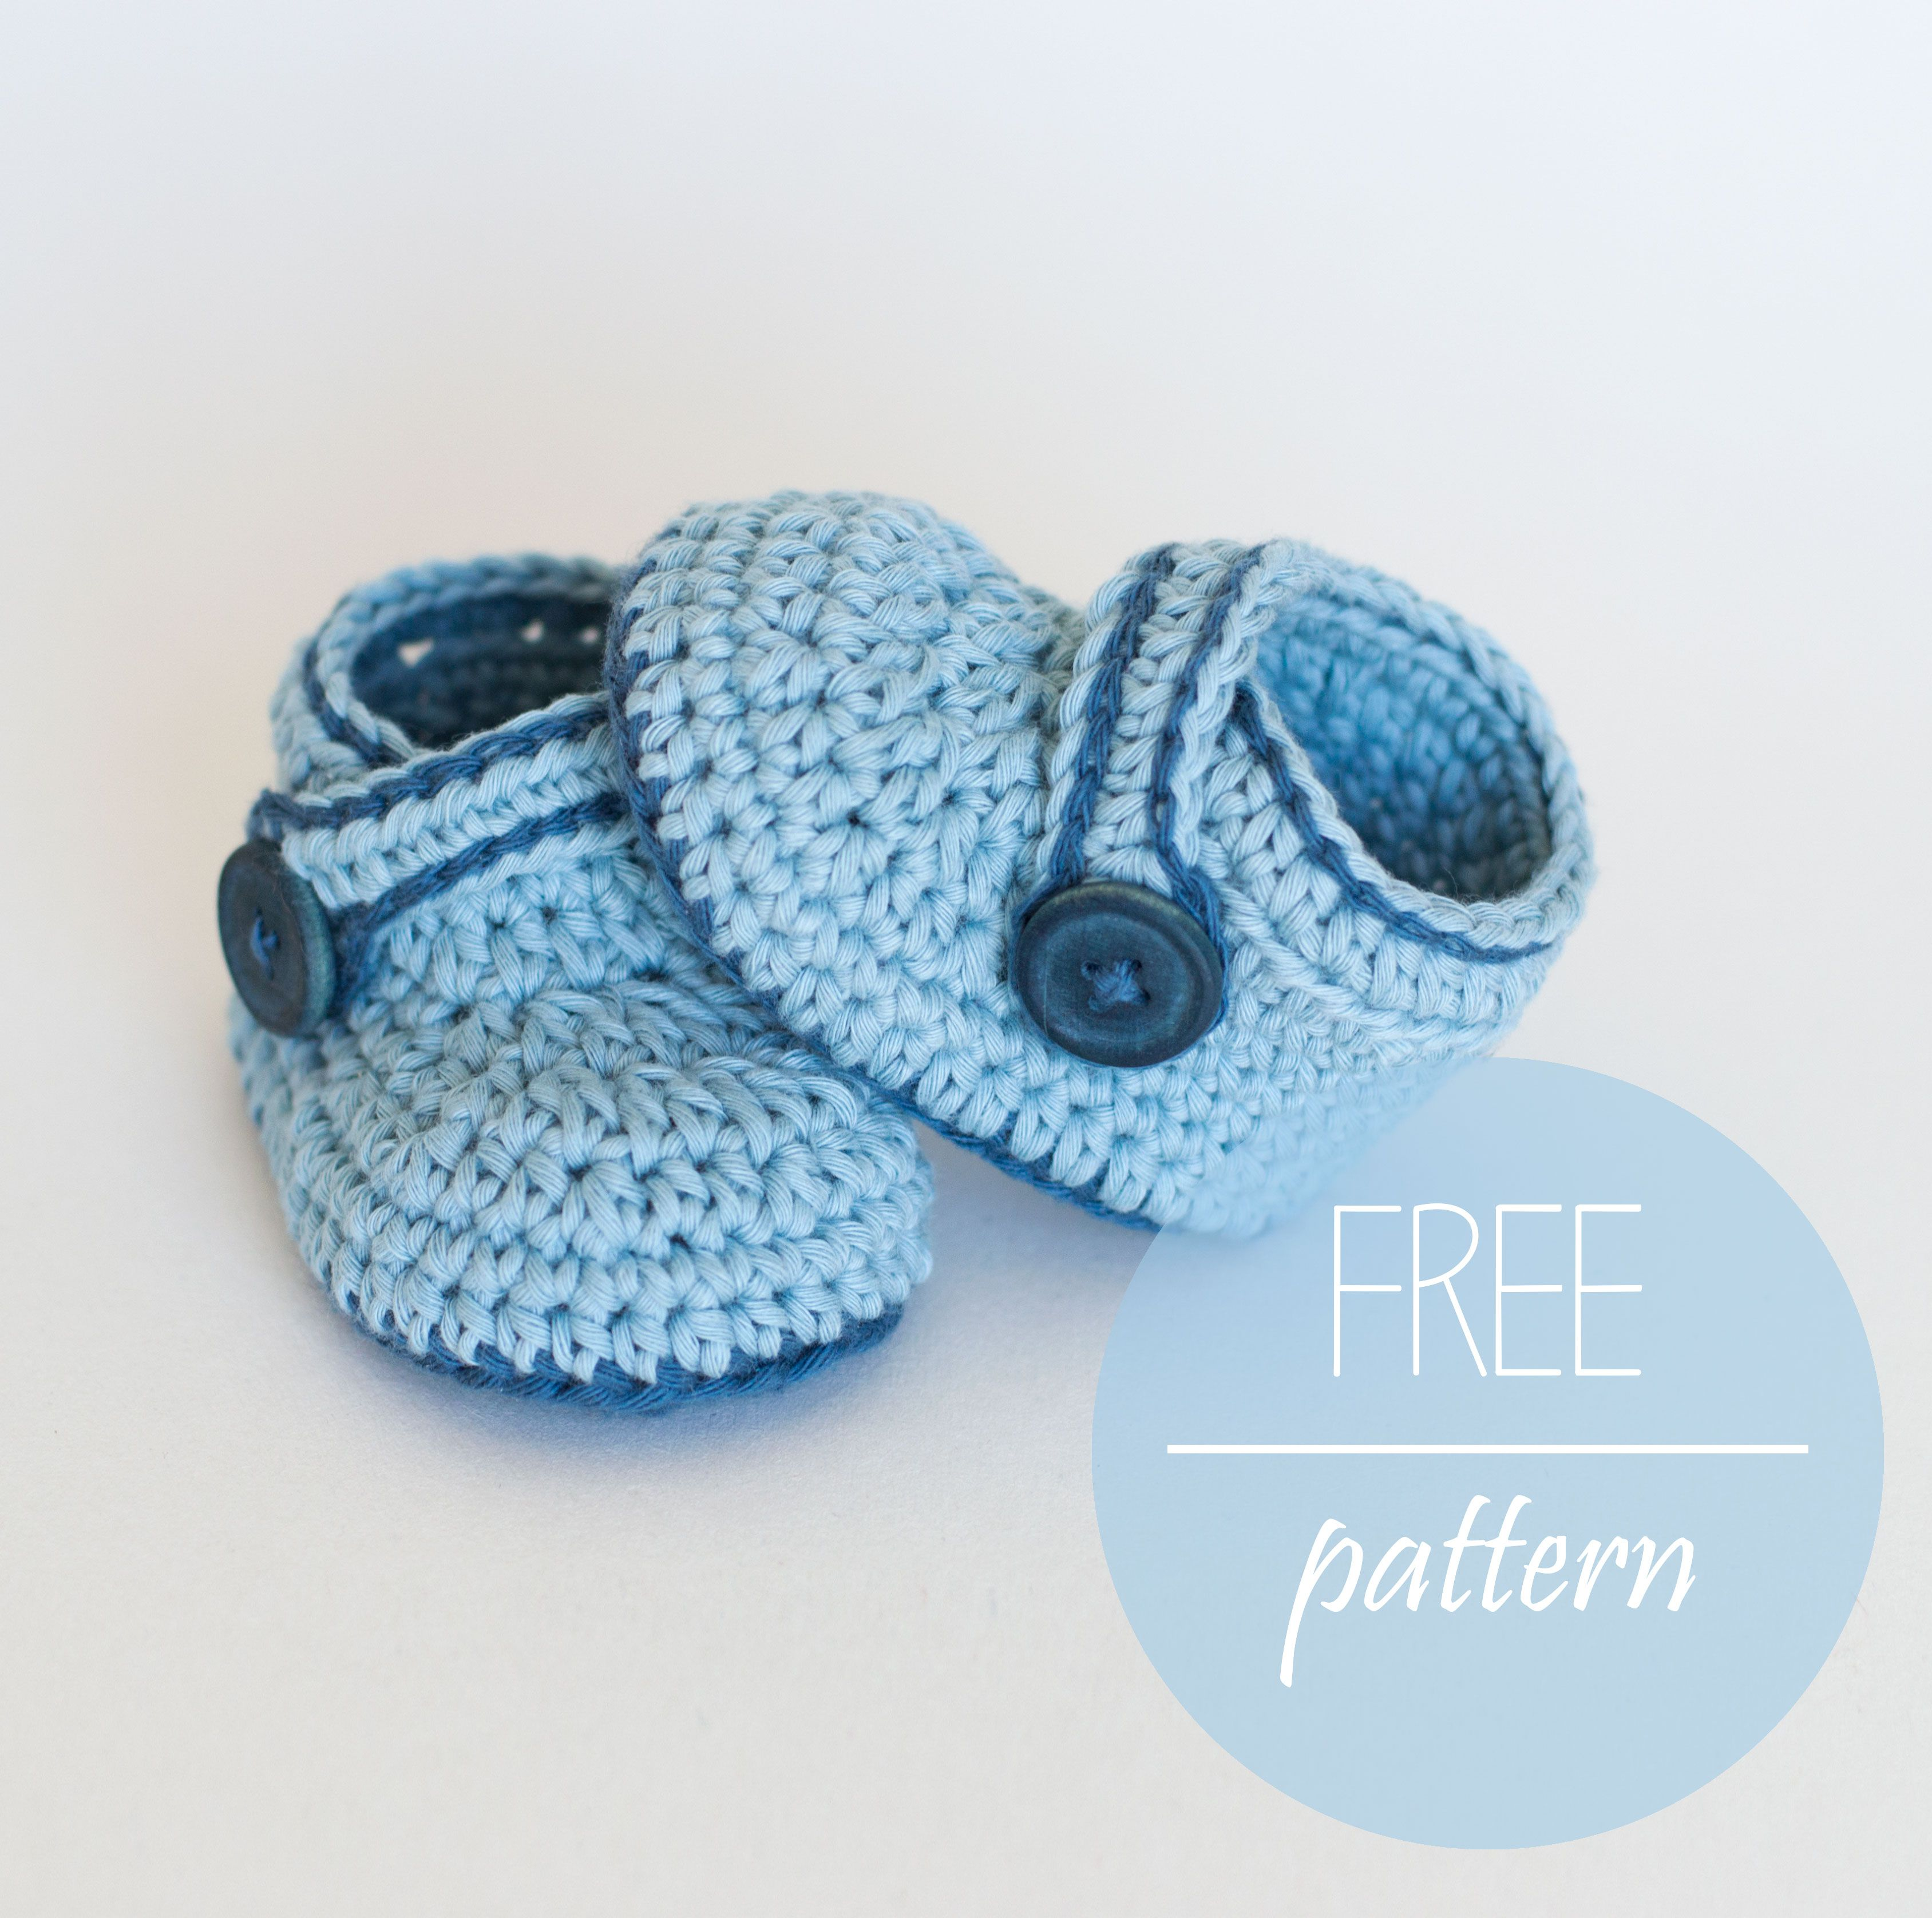 Knitted Dog Sweater Patterns Free For Small Dogs : Croby pattern presents her latest free crochet pattern for